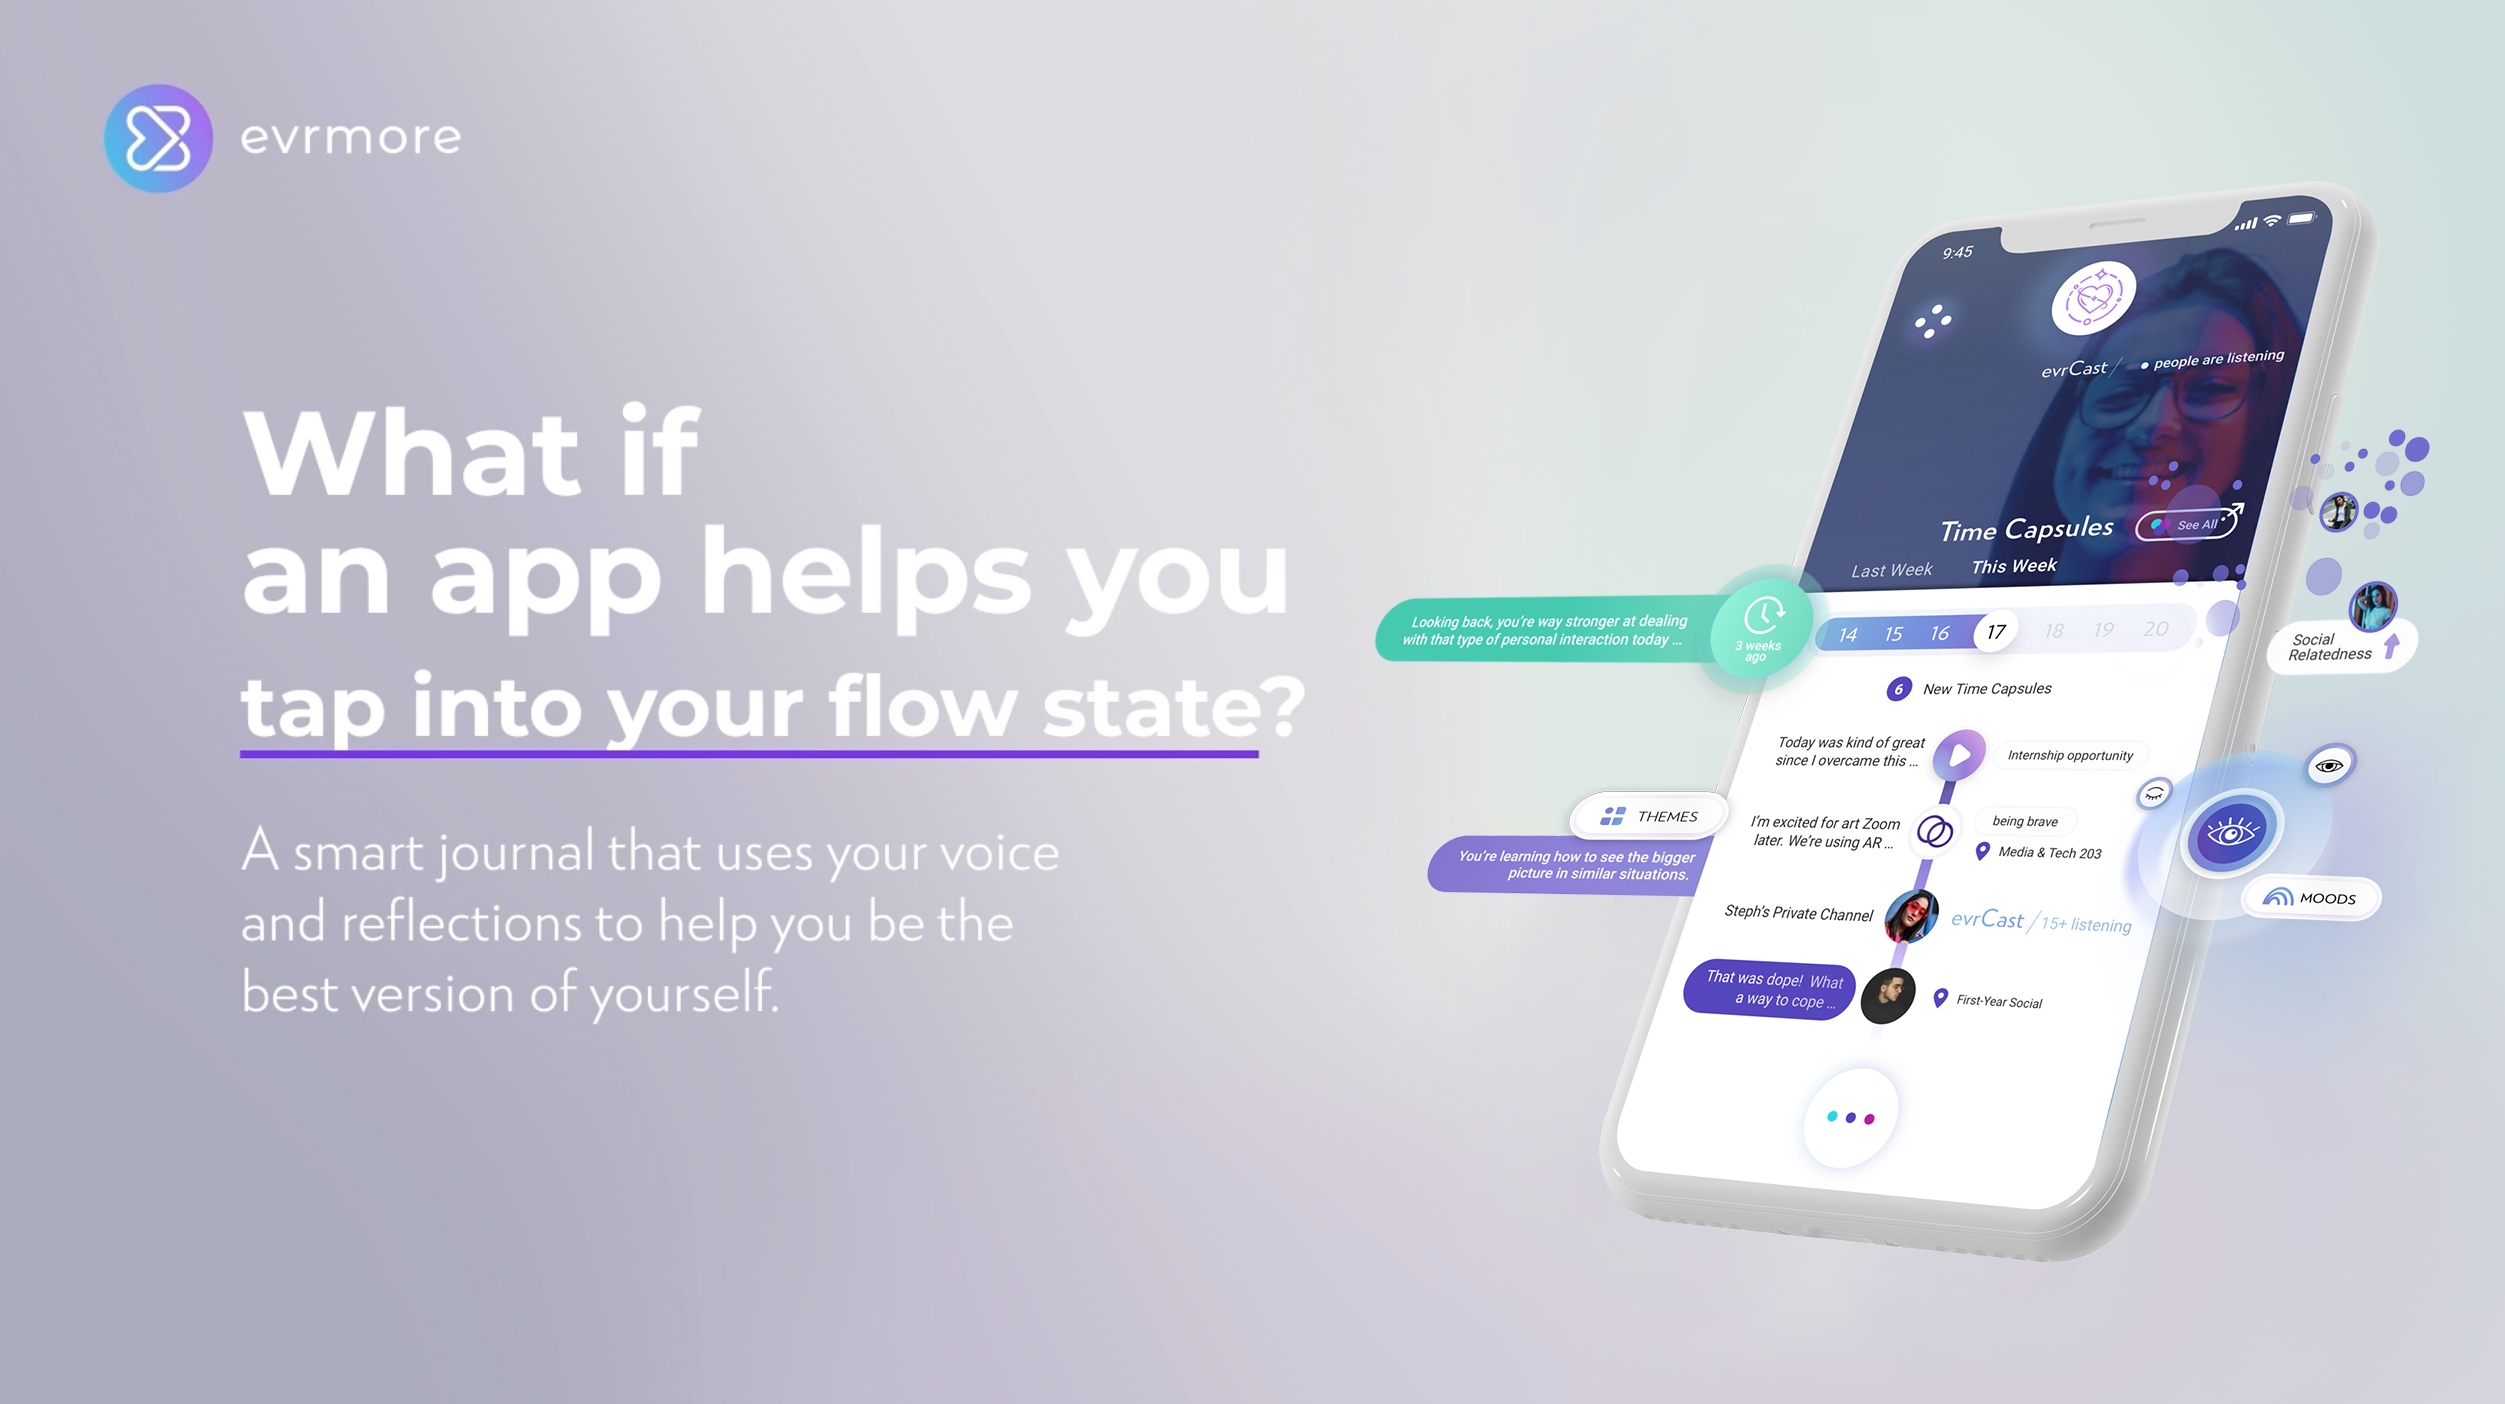 evrmore helps you tap into a social + mentor network uniquely your own